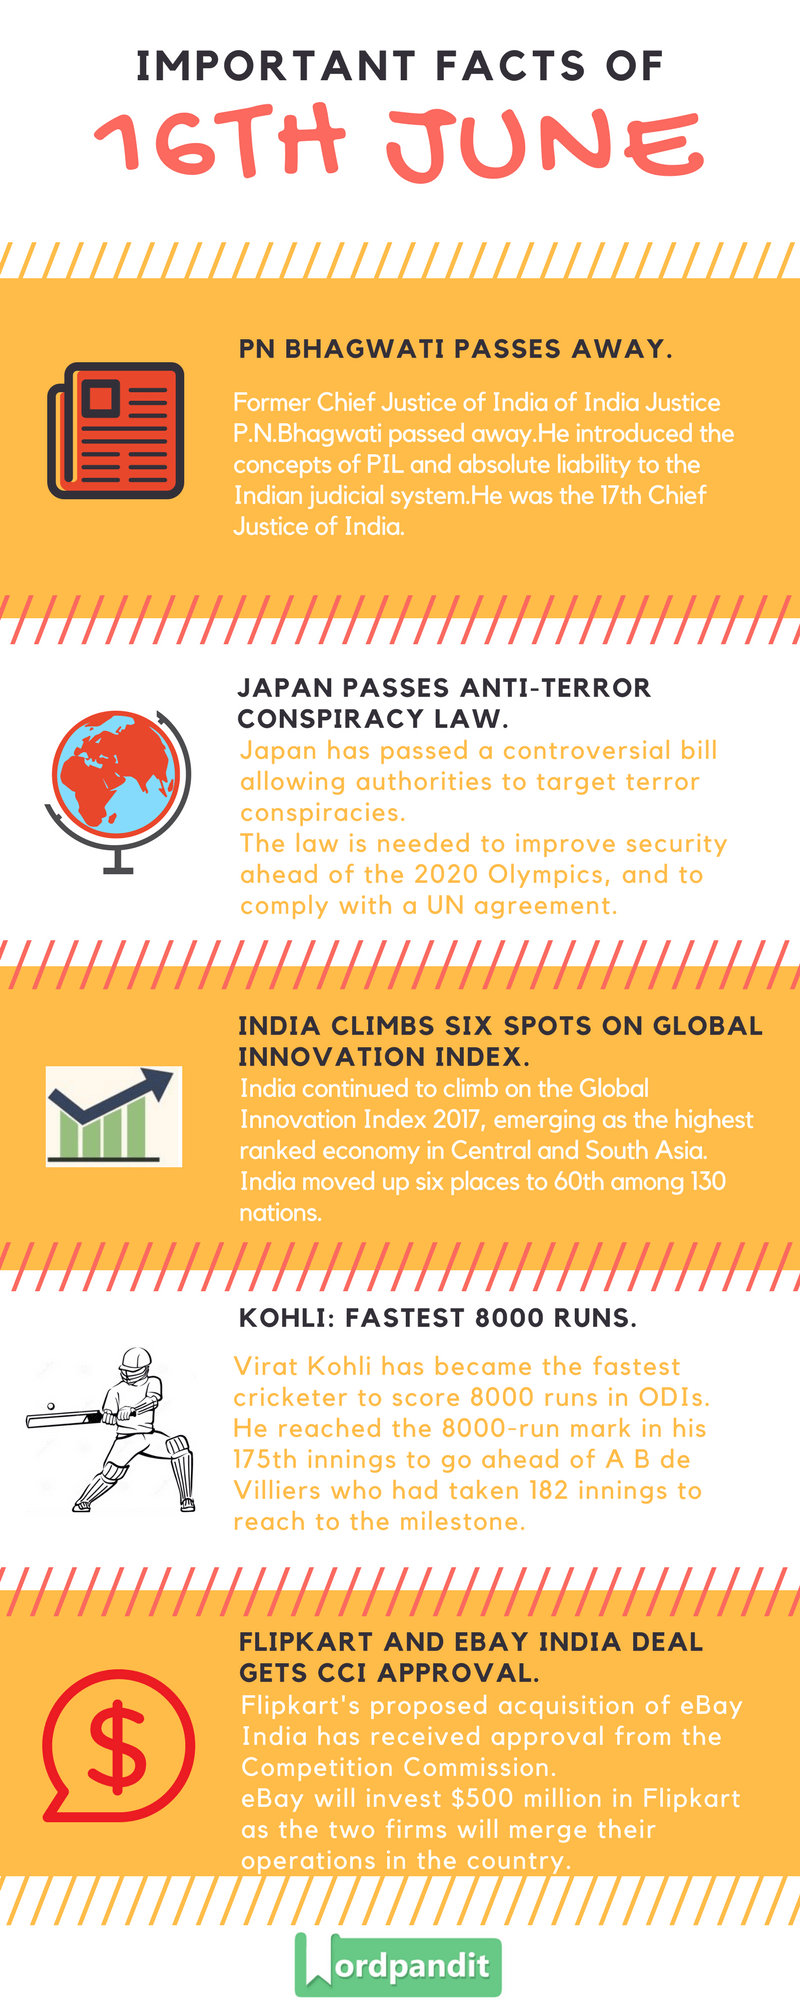 Daily Current Affairs 16 june 2017 and Current Affairs Quiz June 16 2017 |Current Affairs Infographic 16 june 2017